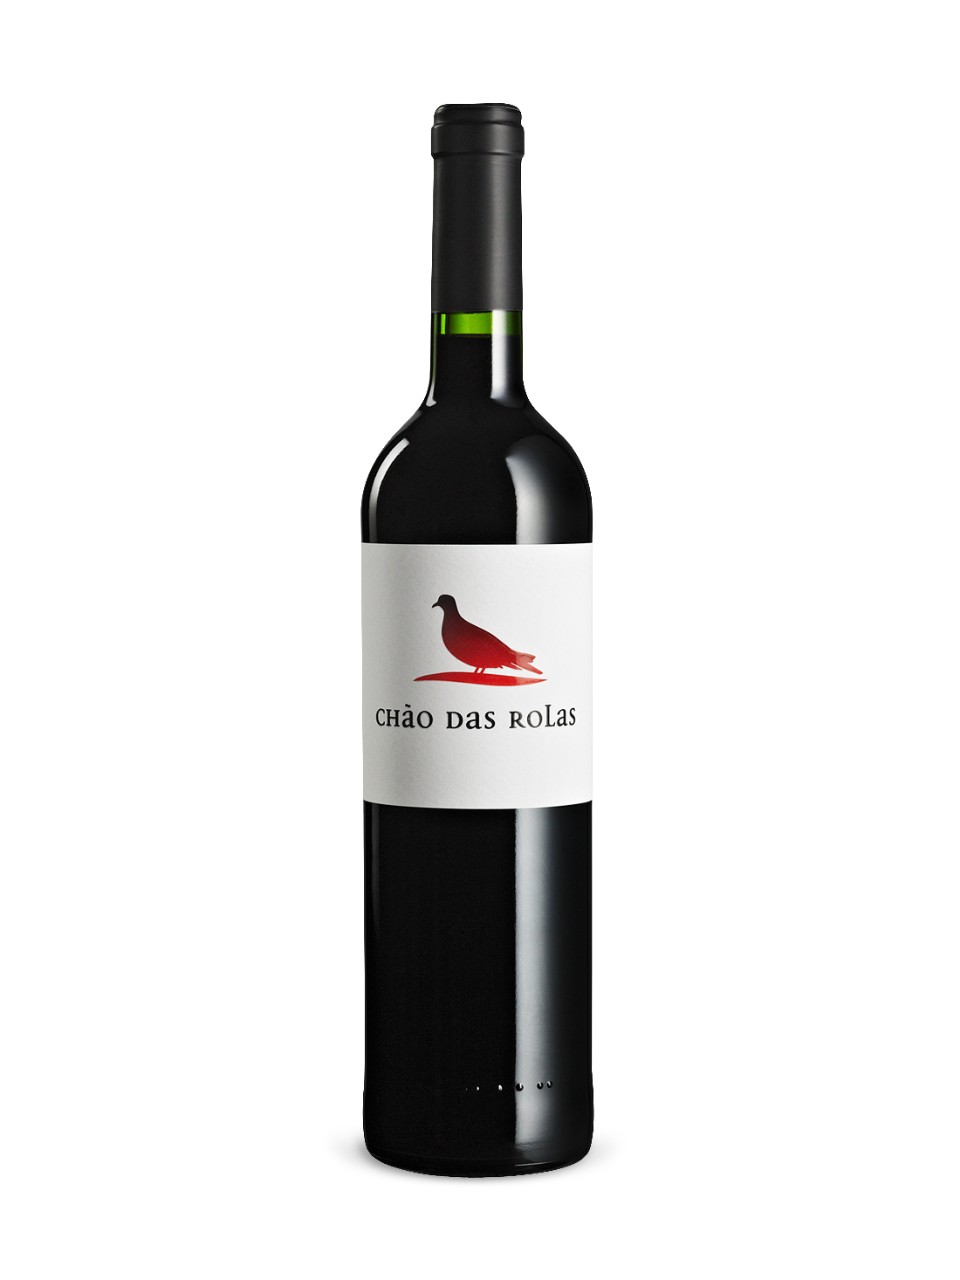 Chao das Rolas Red 2016 from LCBO